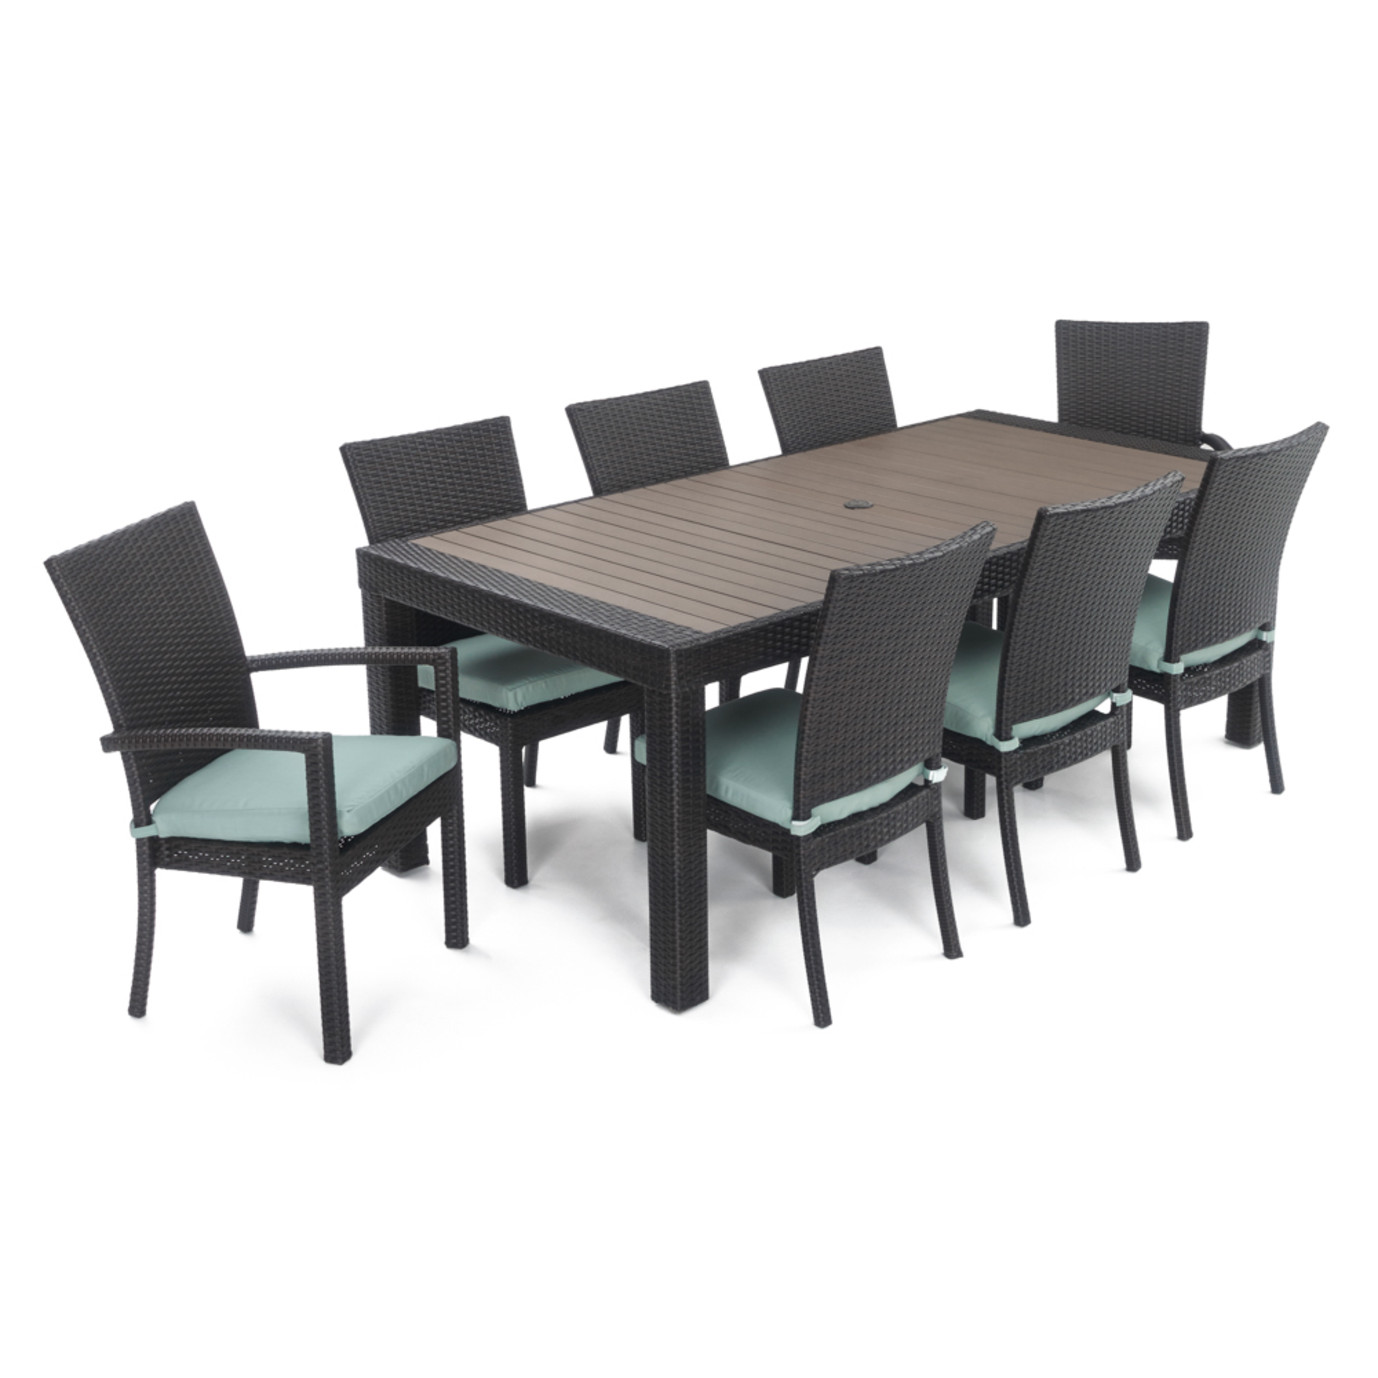 Deco™ 9pc Dining Set - Bliss Blue